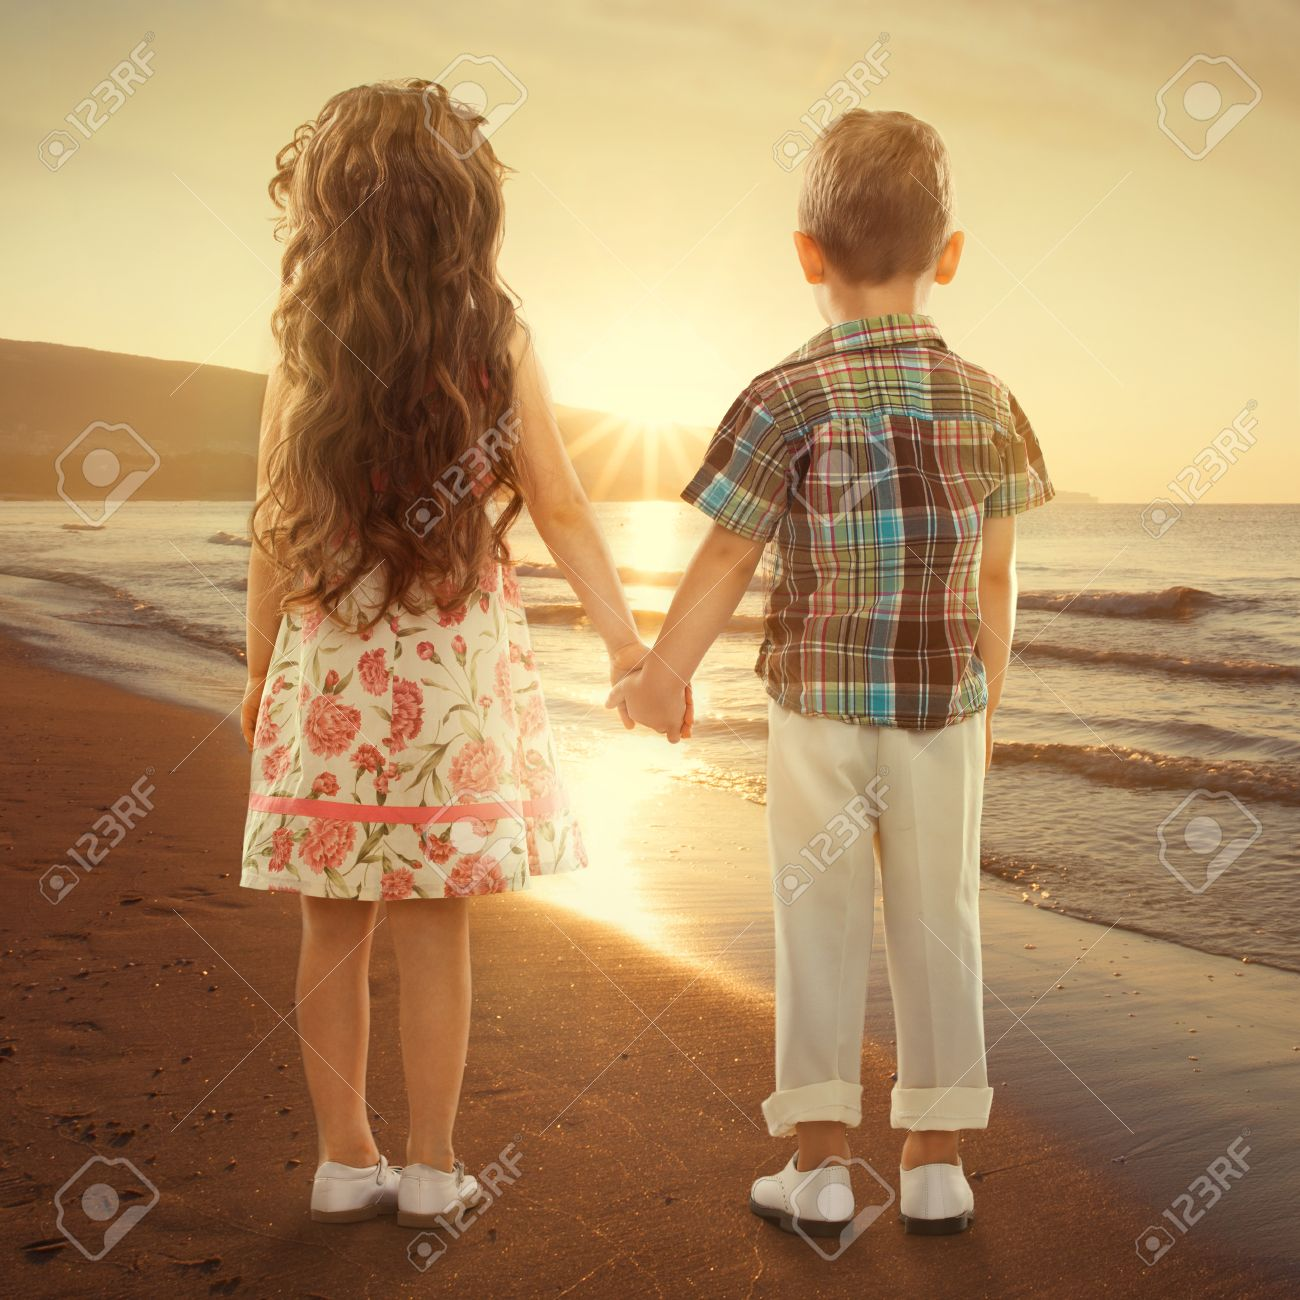 Back View Of Little Girl And Boy Holding Hands At Sunset Love